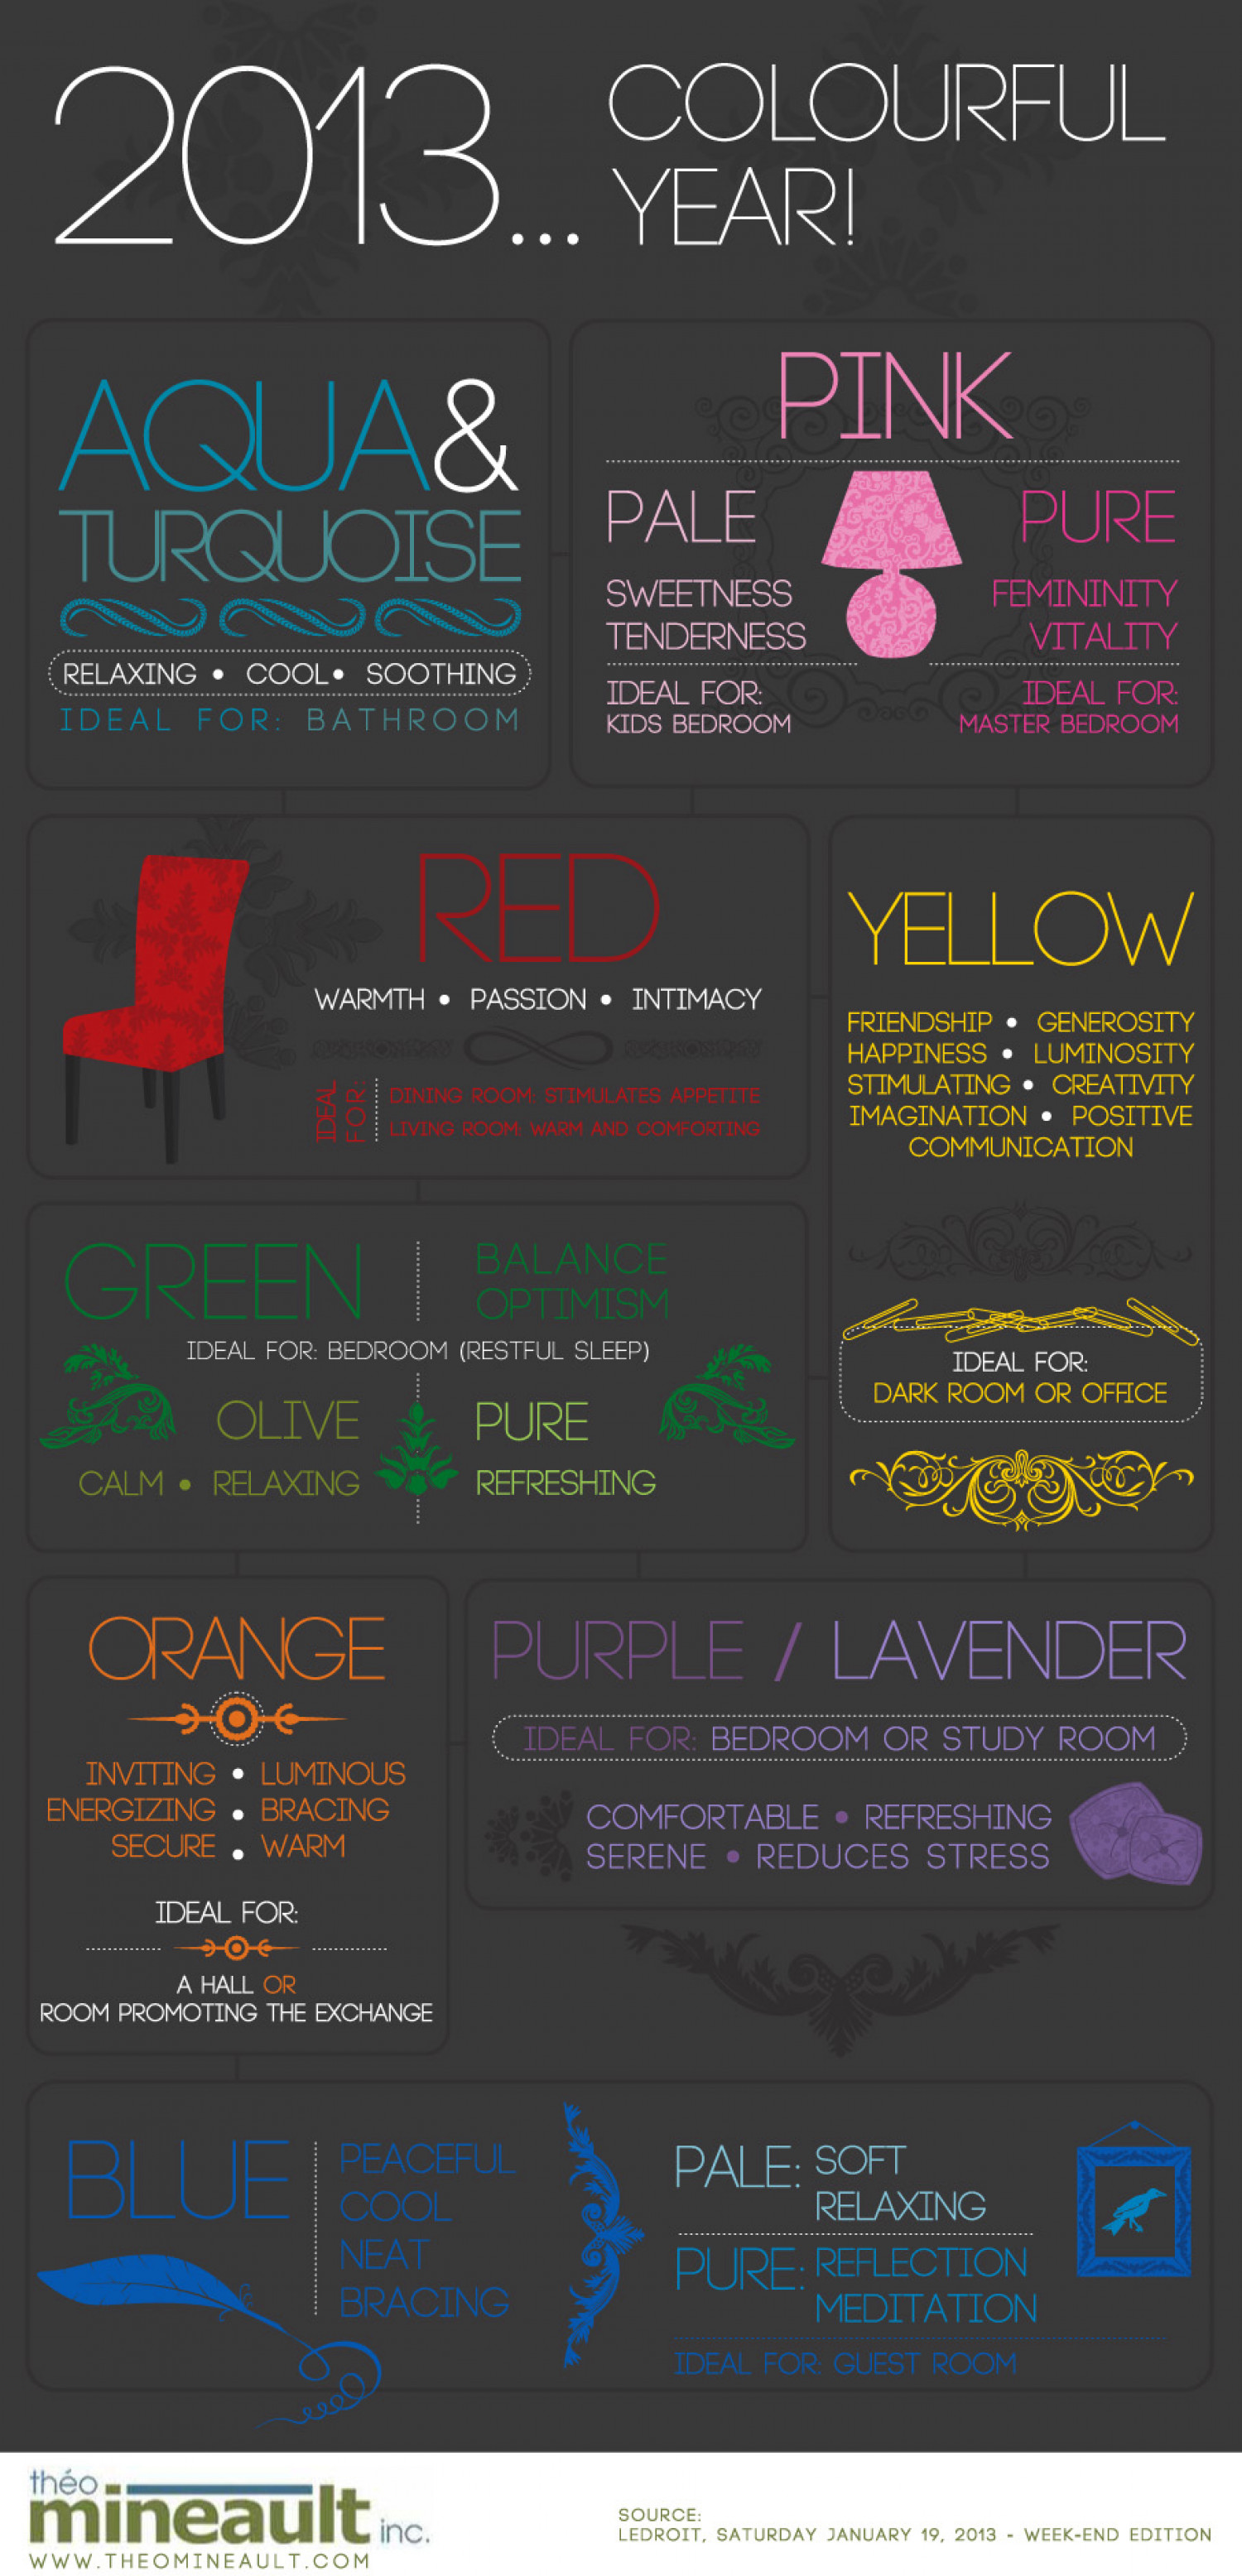 2013... Colourful Year! Infographic